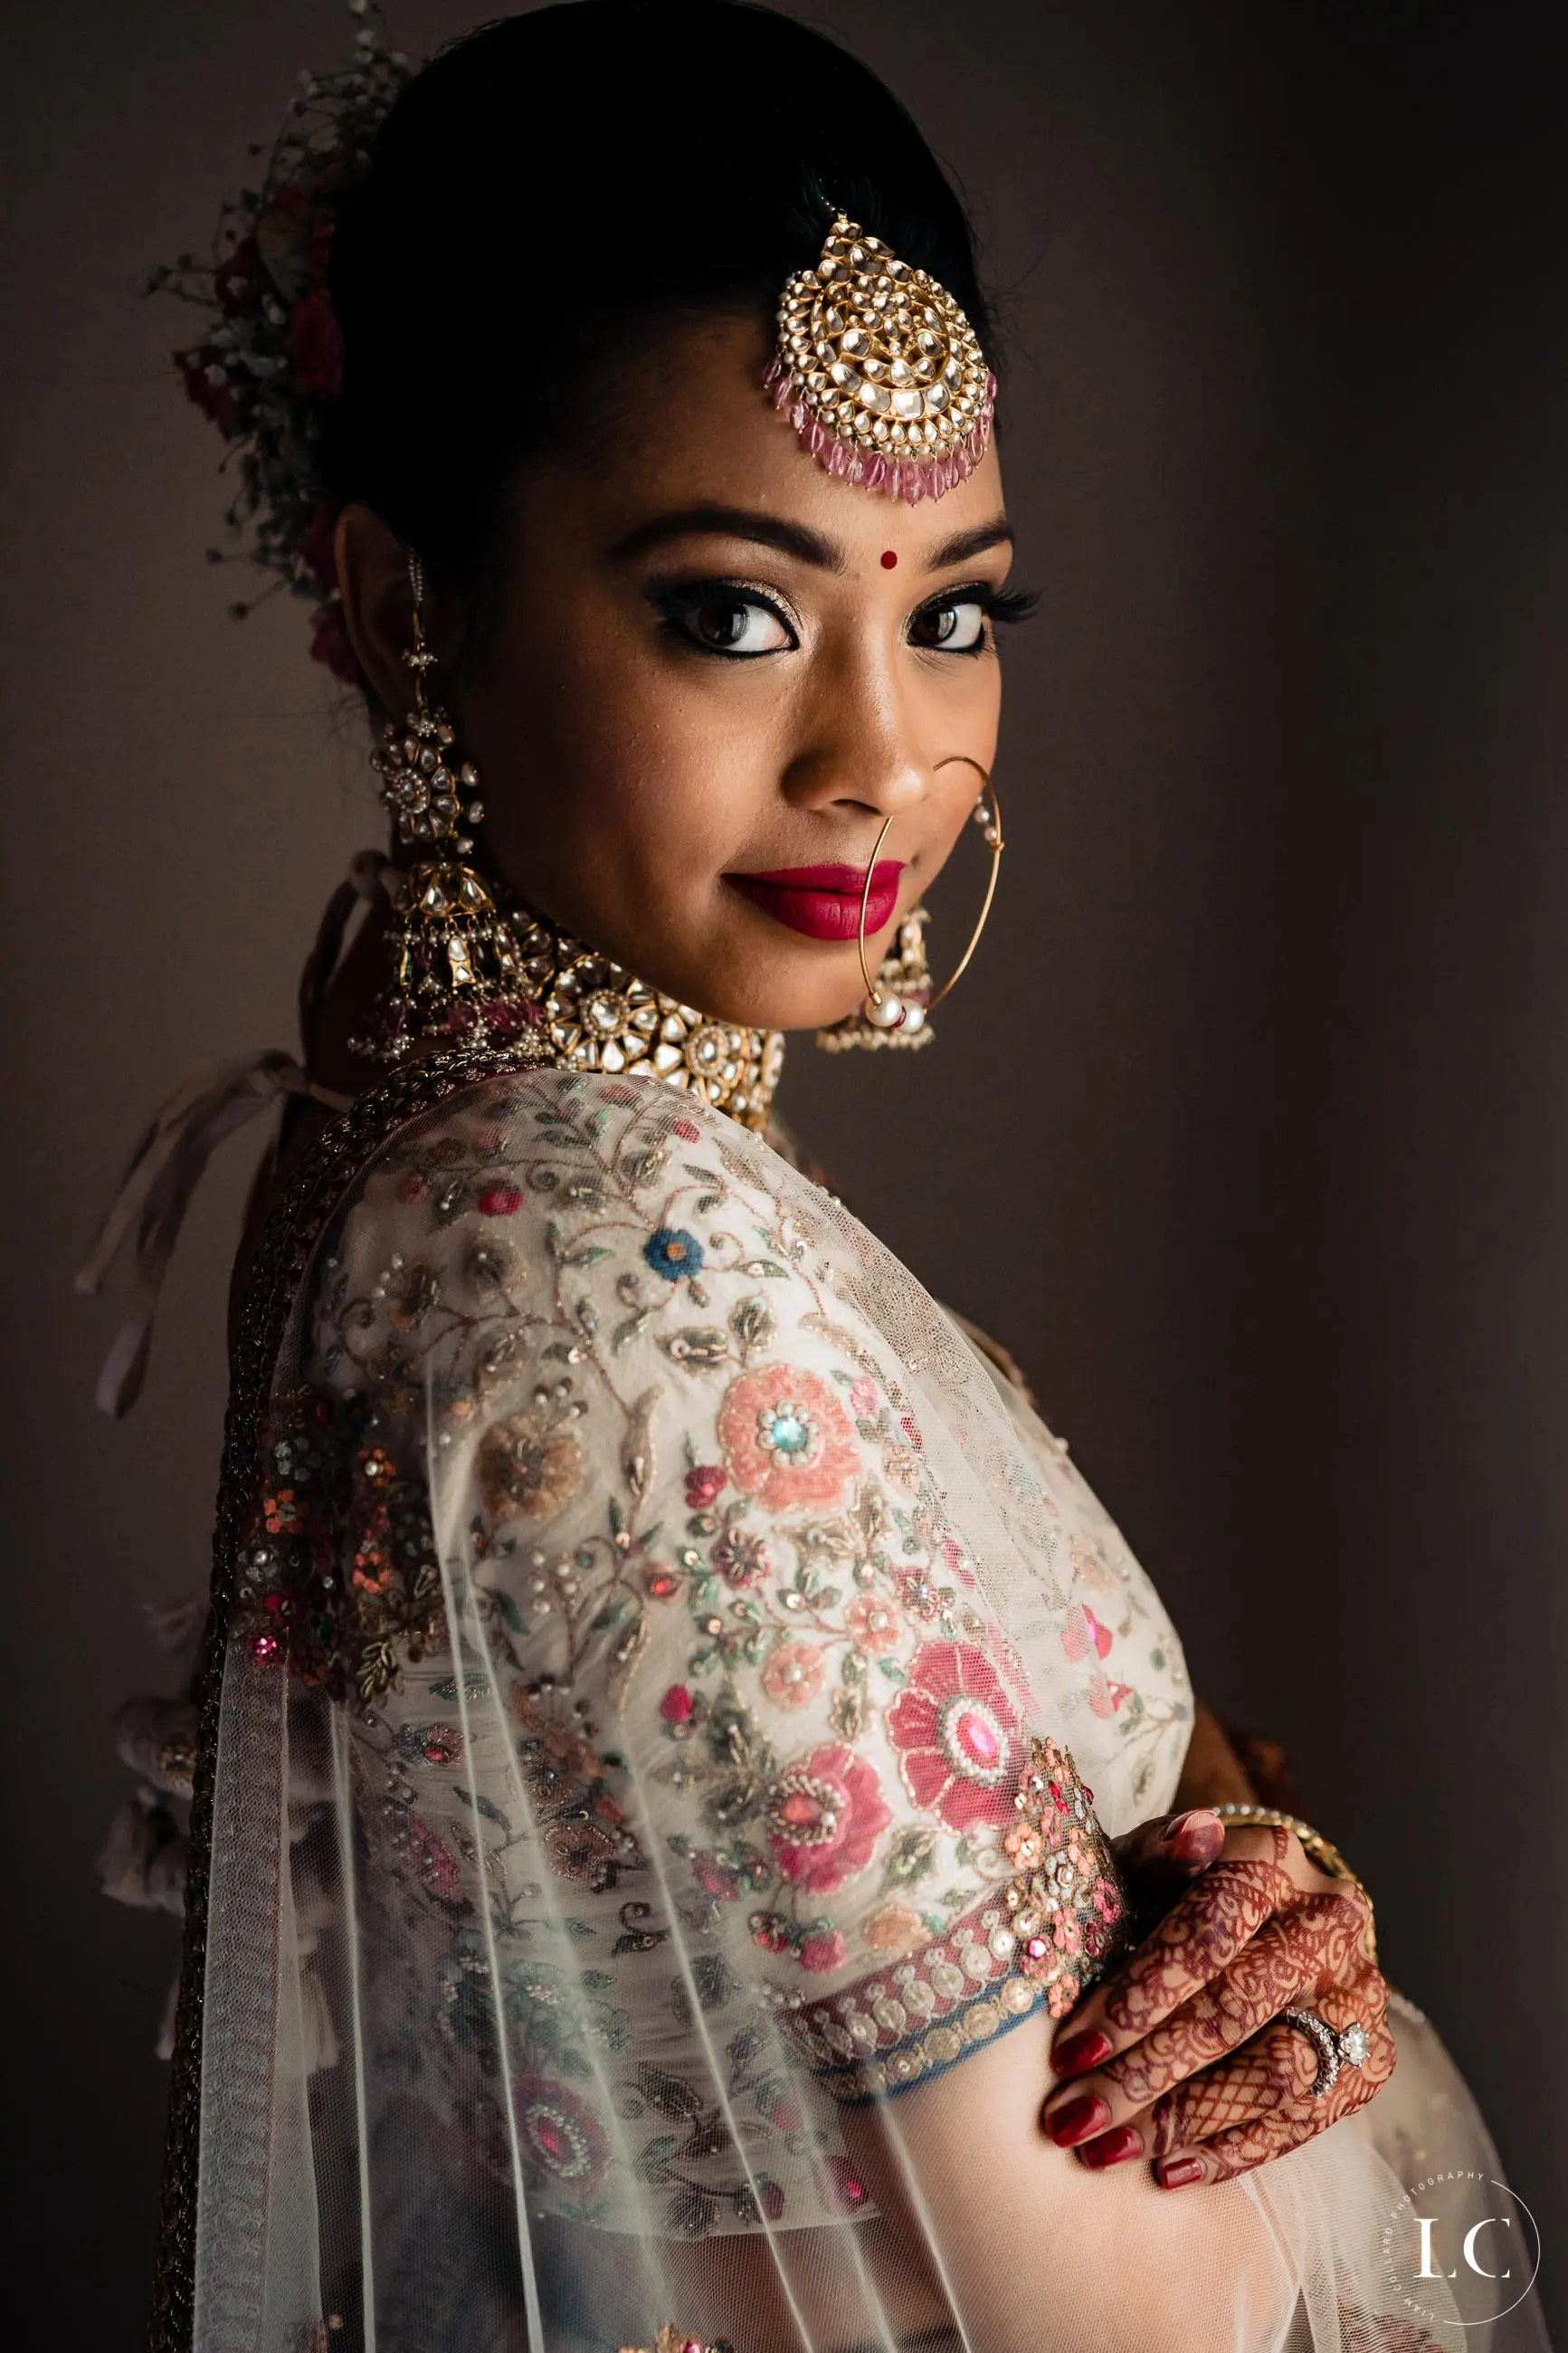 Candid shot of bride at Indian wedding